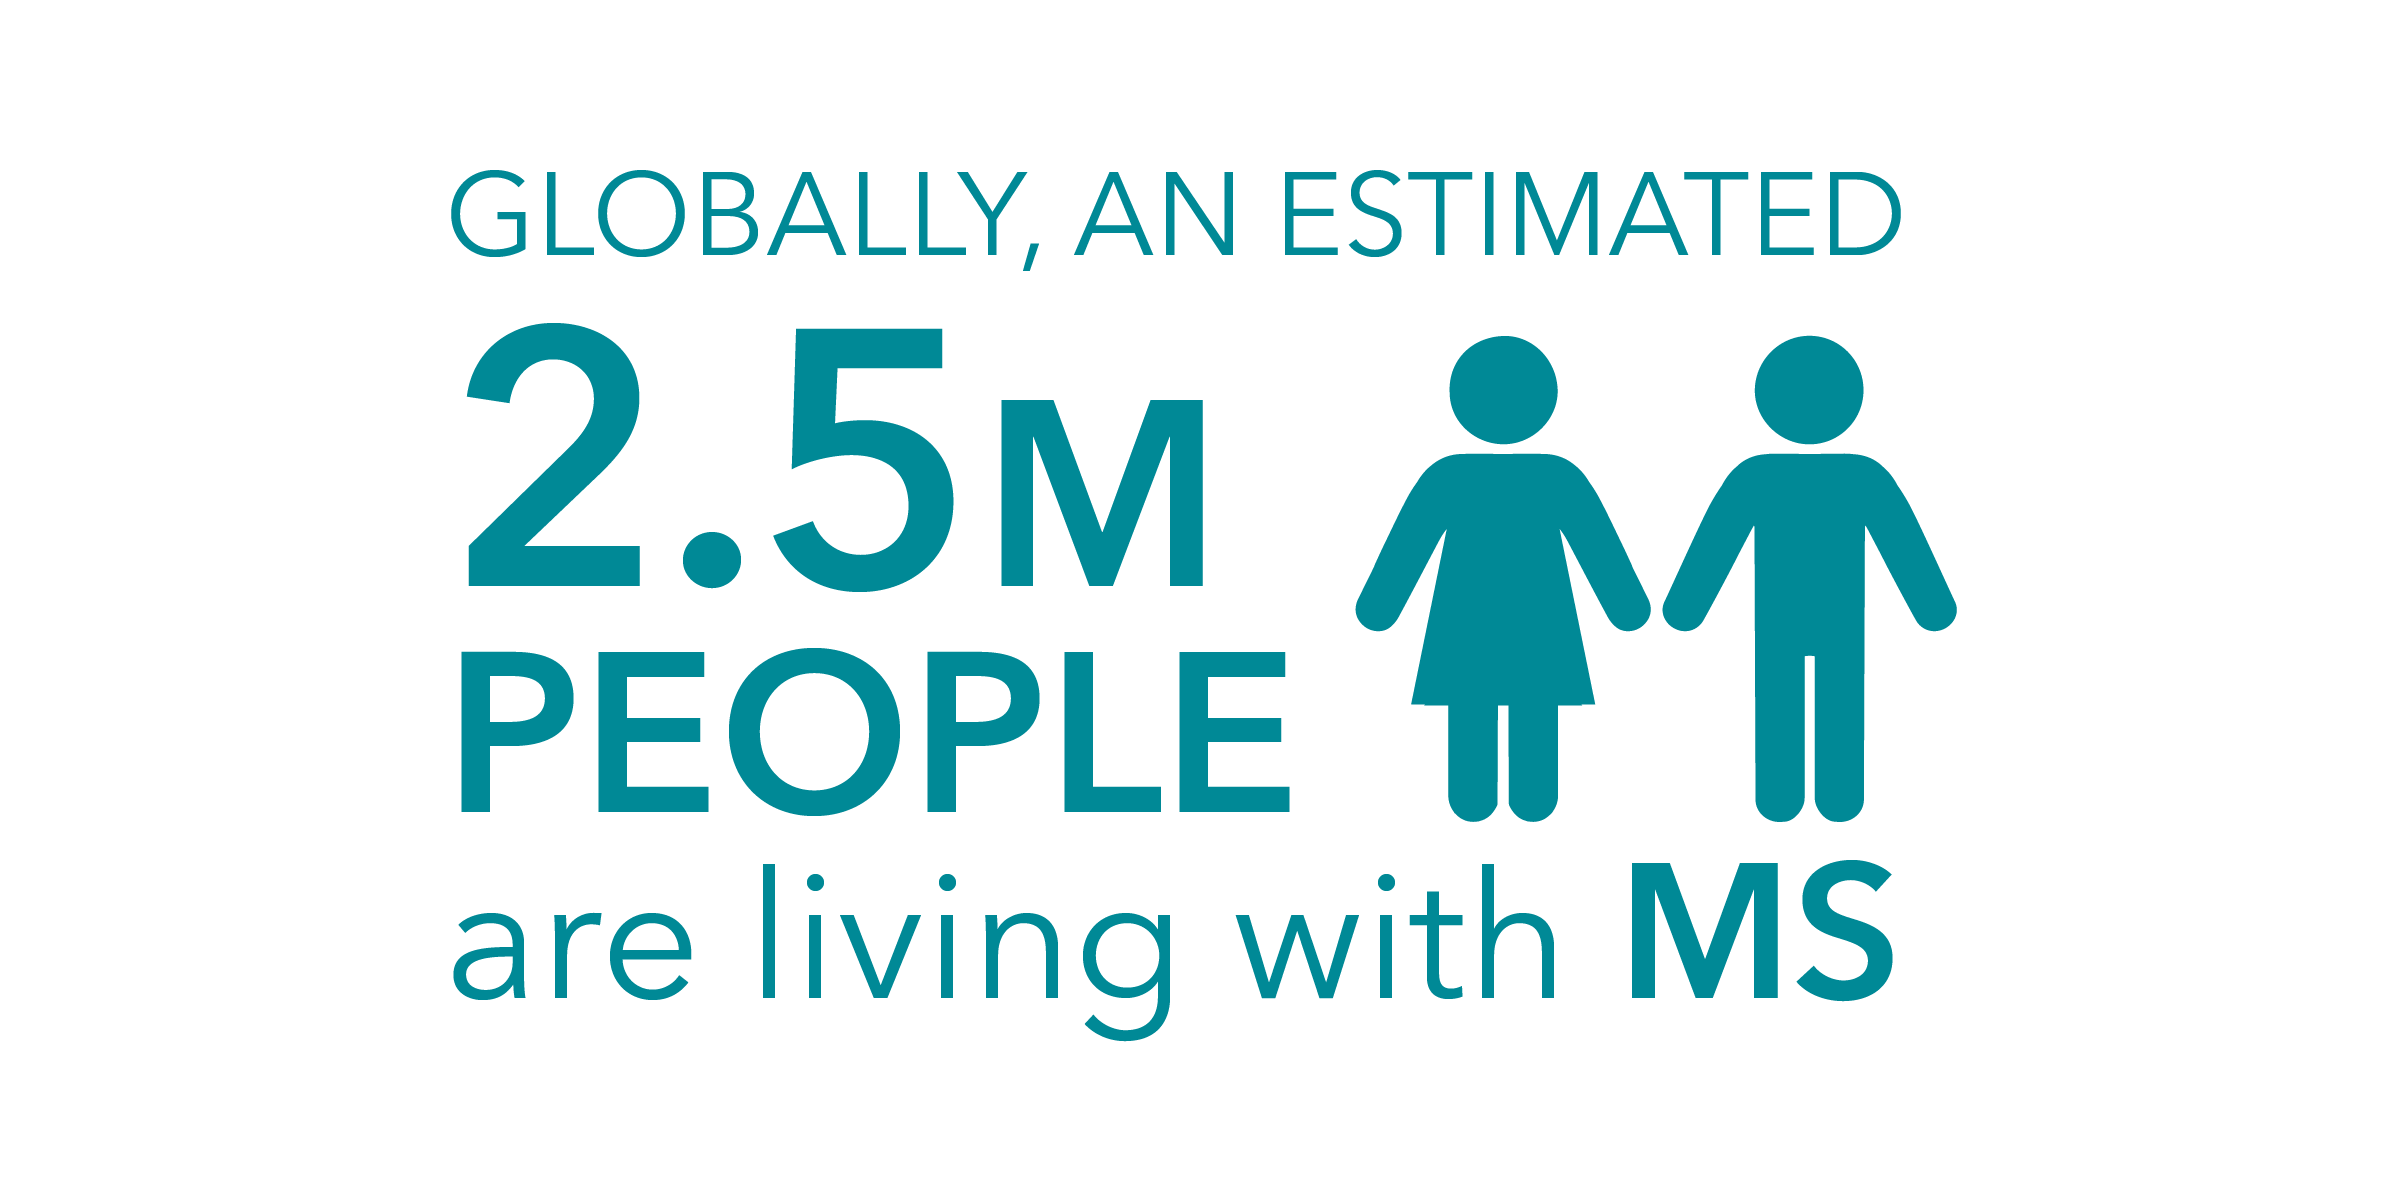 Globally, an estimated 2.5 million people have MS.